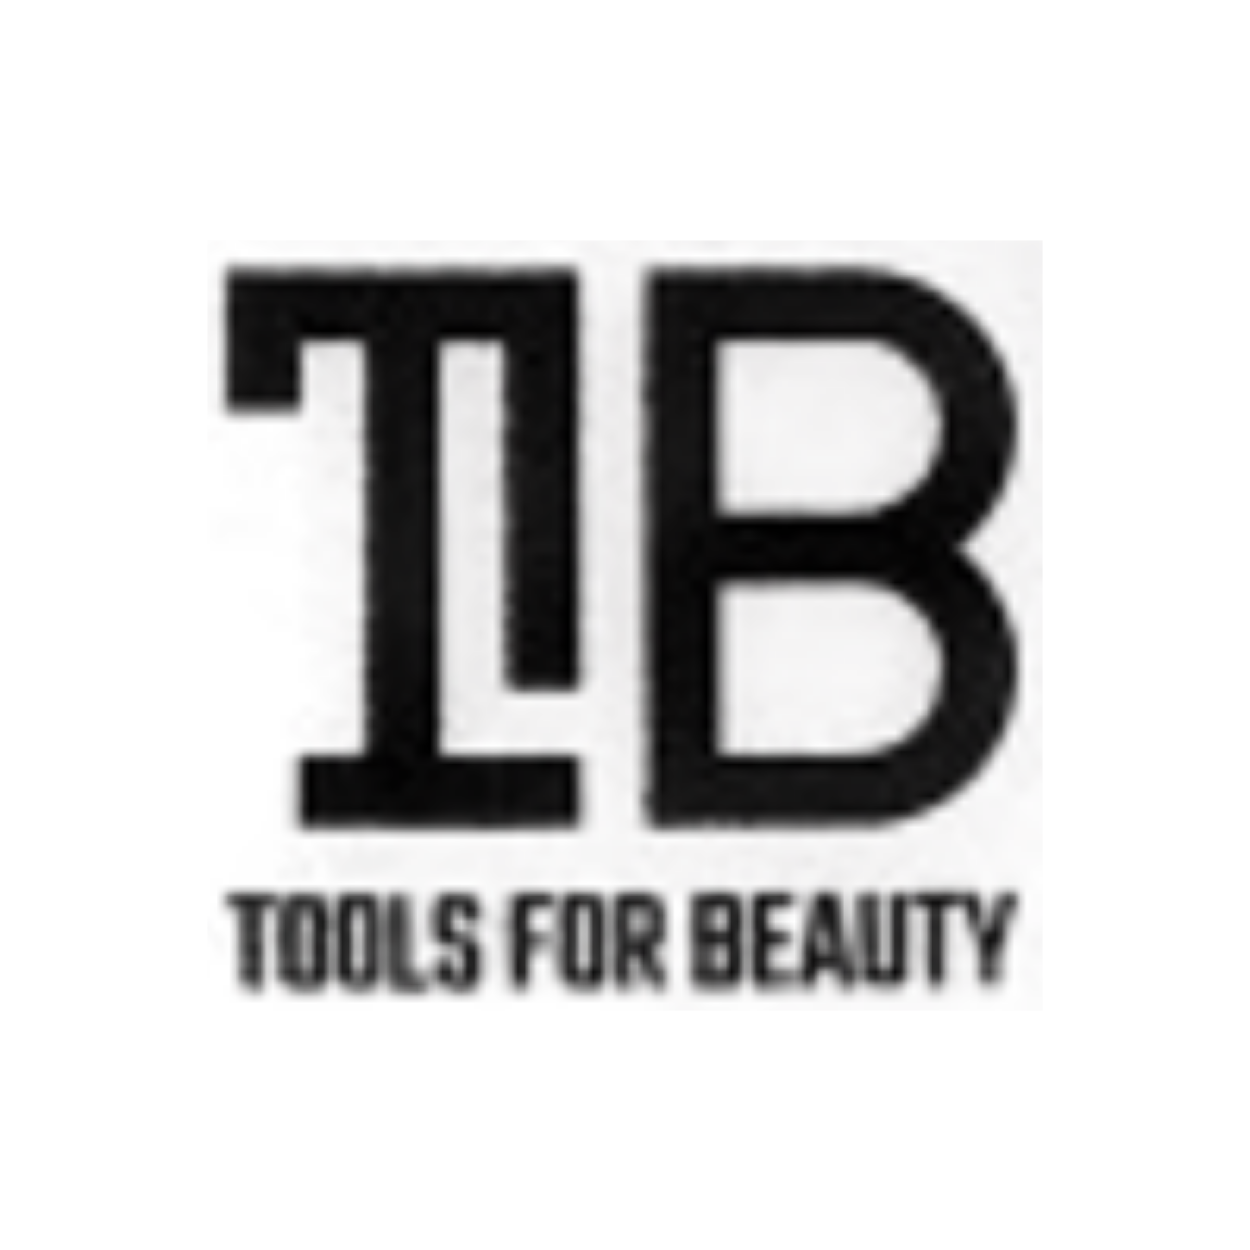 Tools For Beauty